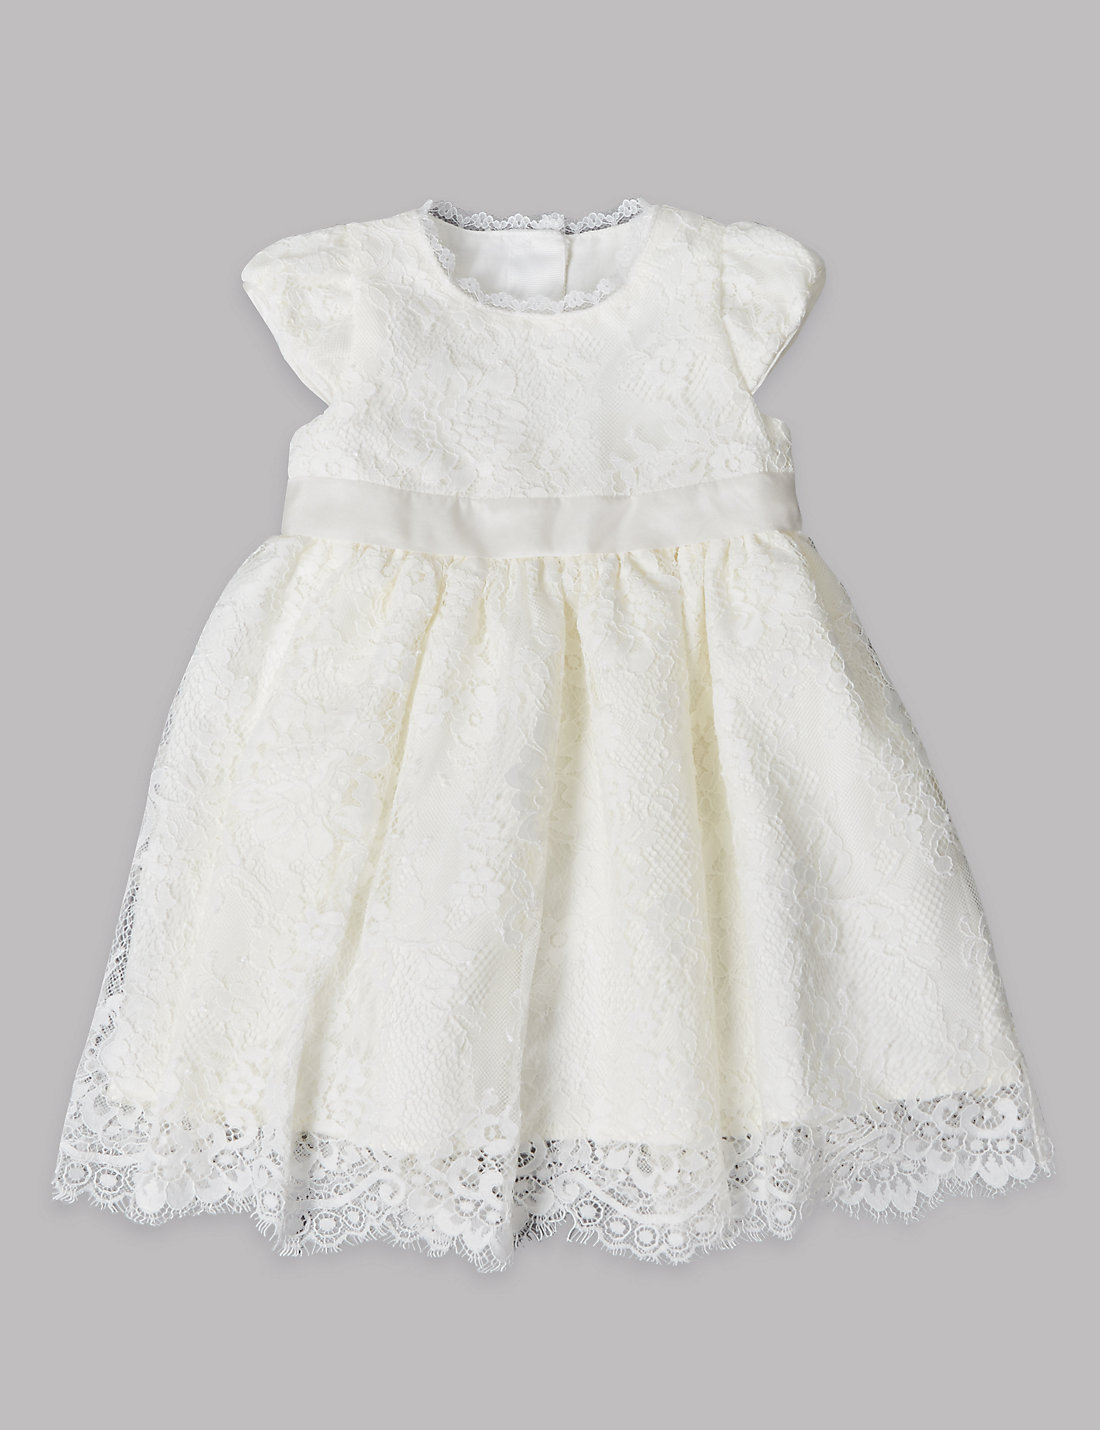 Baby Girl Dresses  Newborn Baby Girl Occasion &amp Party Dresses  M&ampS